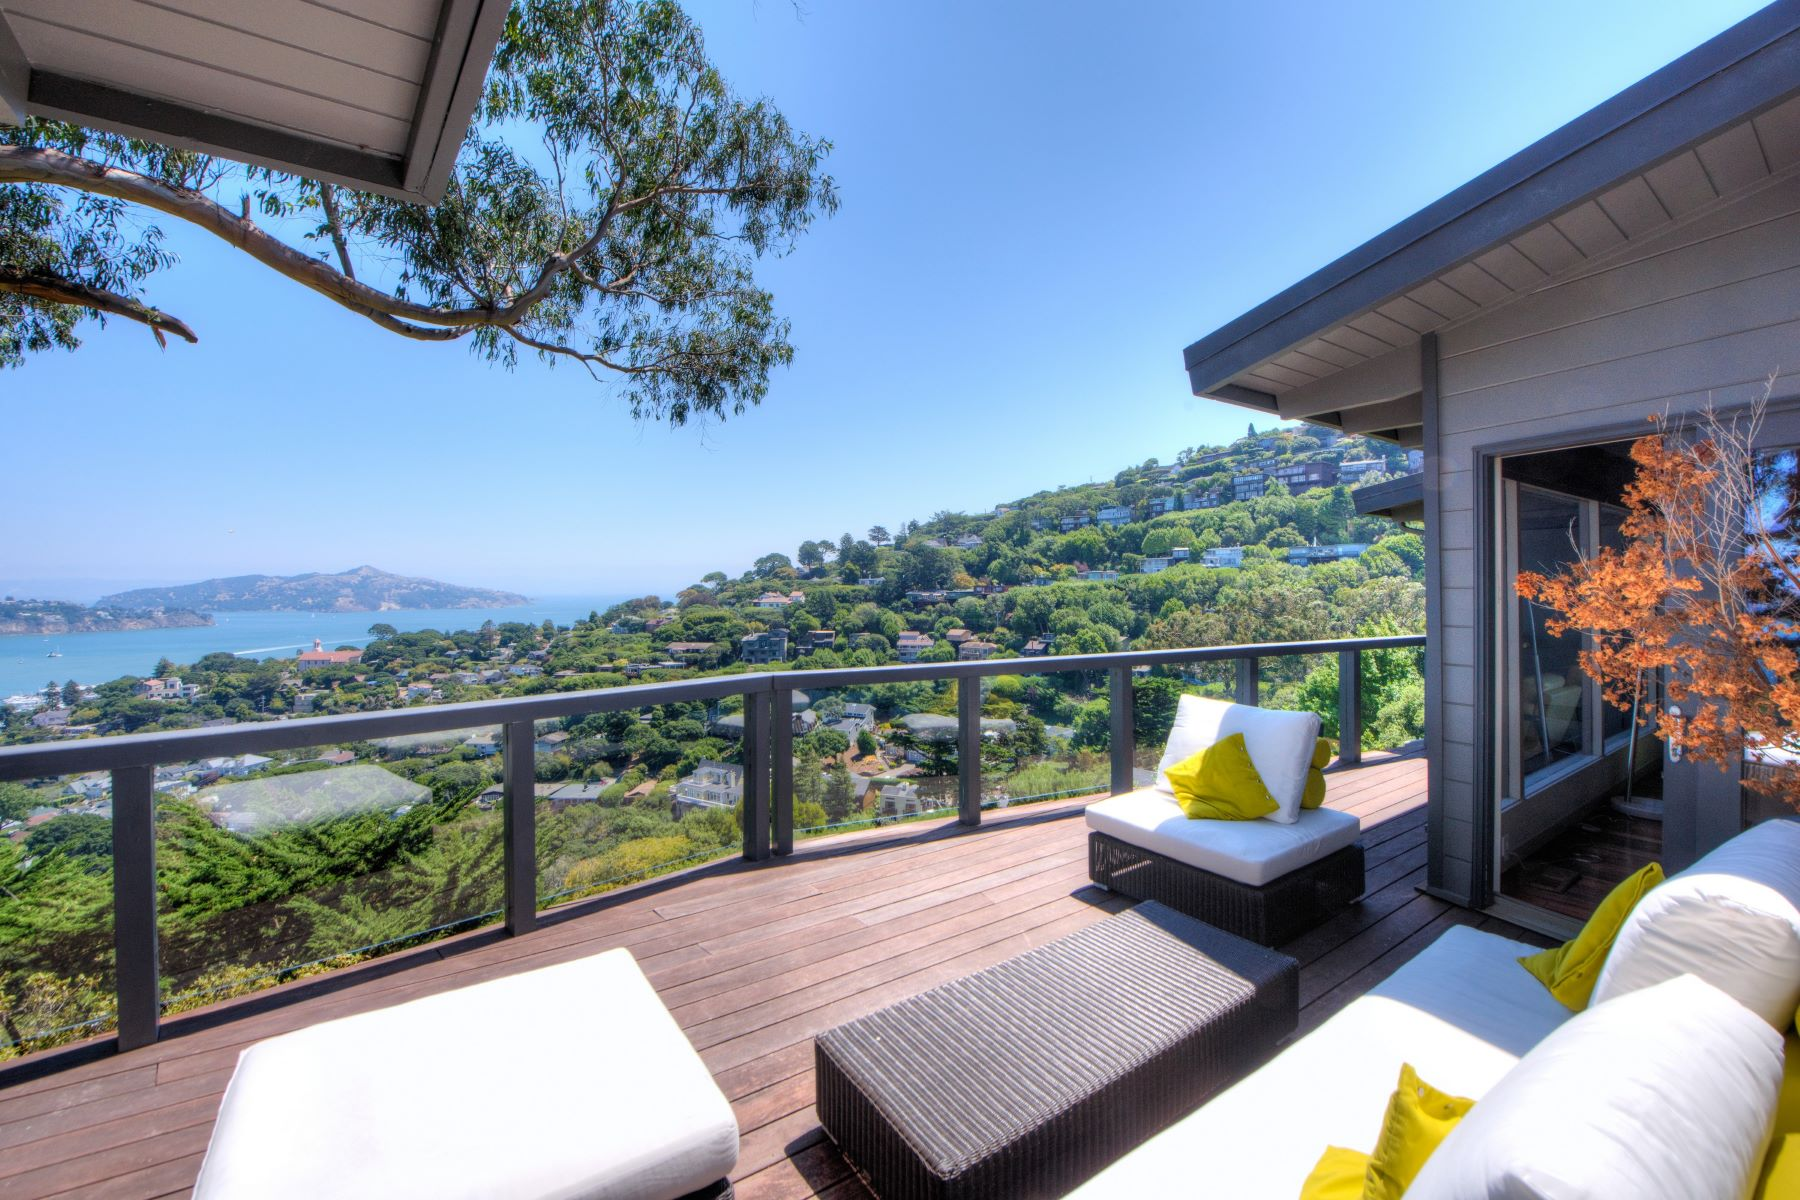 Additional photo for property listing at Contemporary with Stunning Bay Views! 51 George Lane Sausalito, Калифорния 94965 Соединенные Штаты